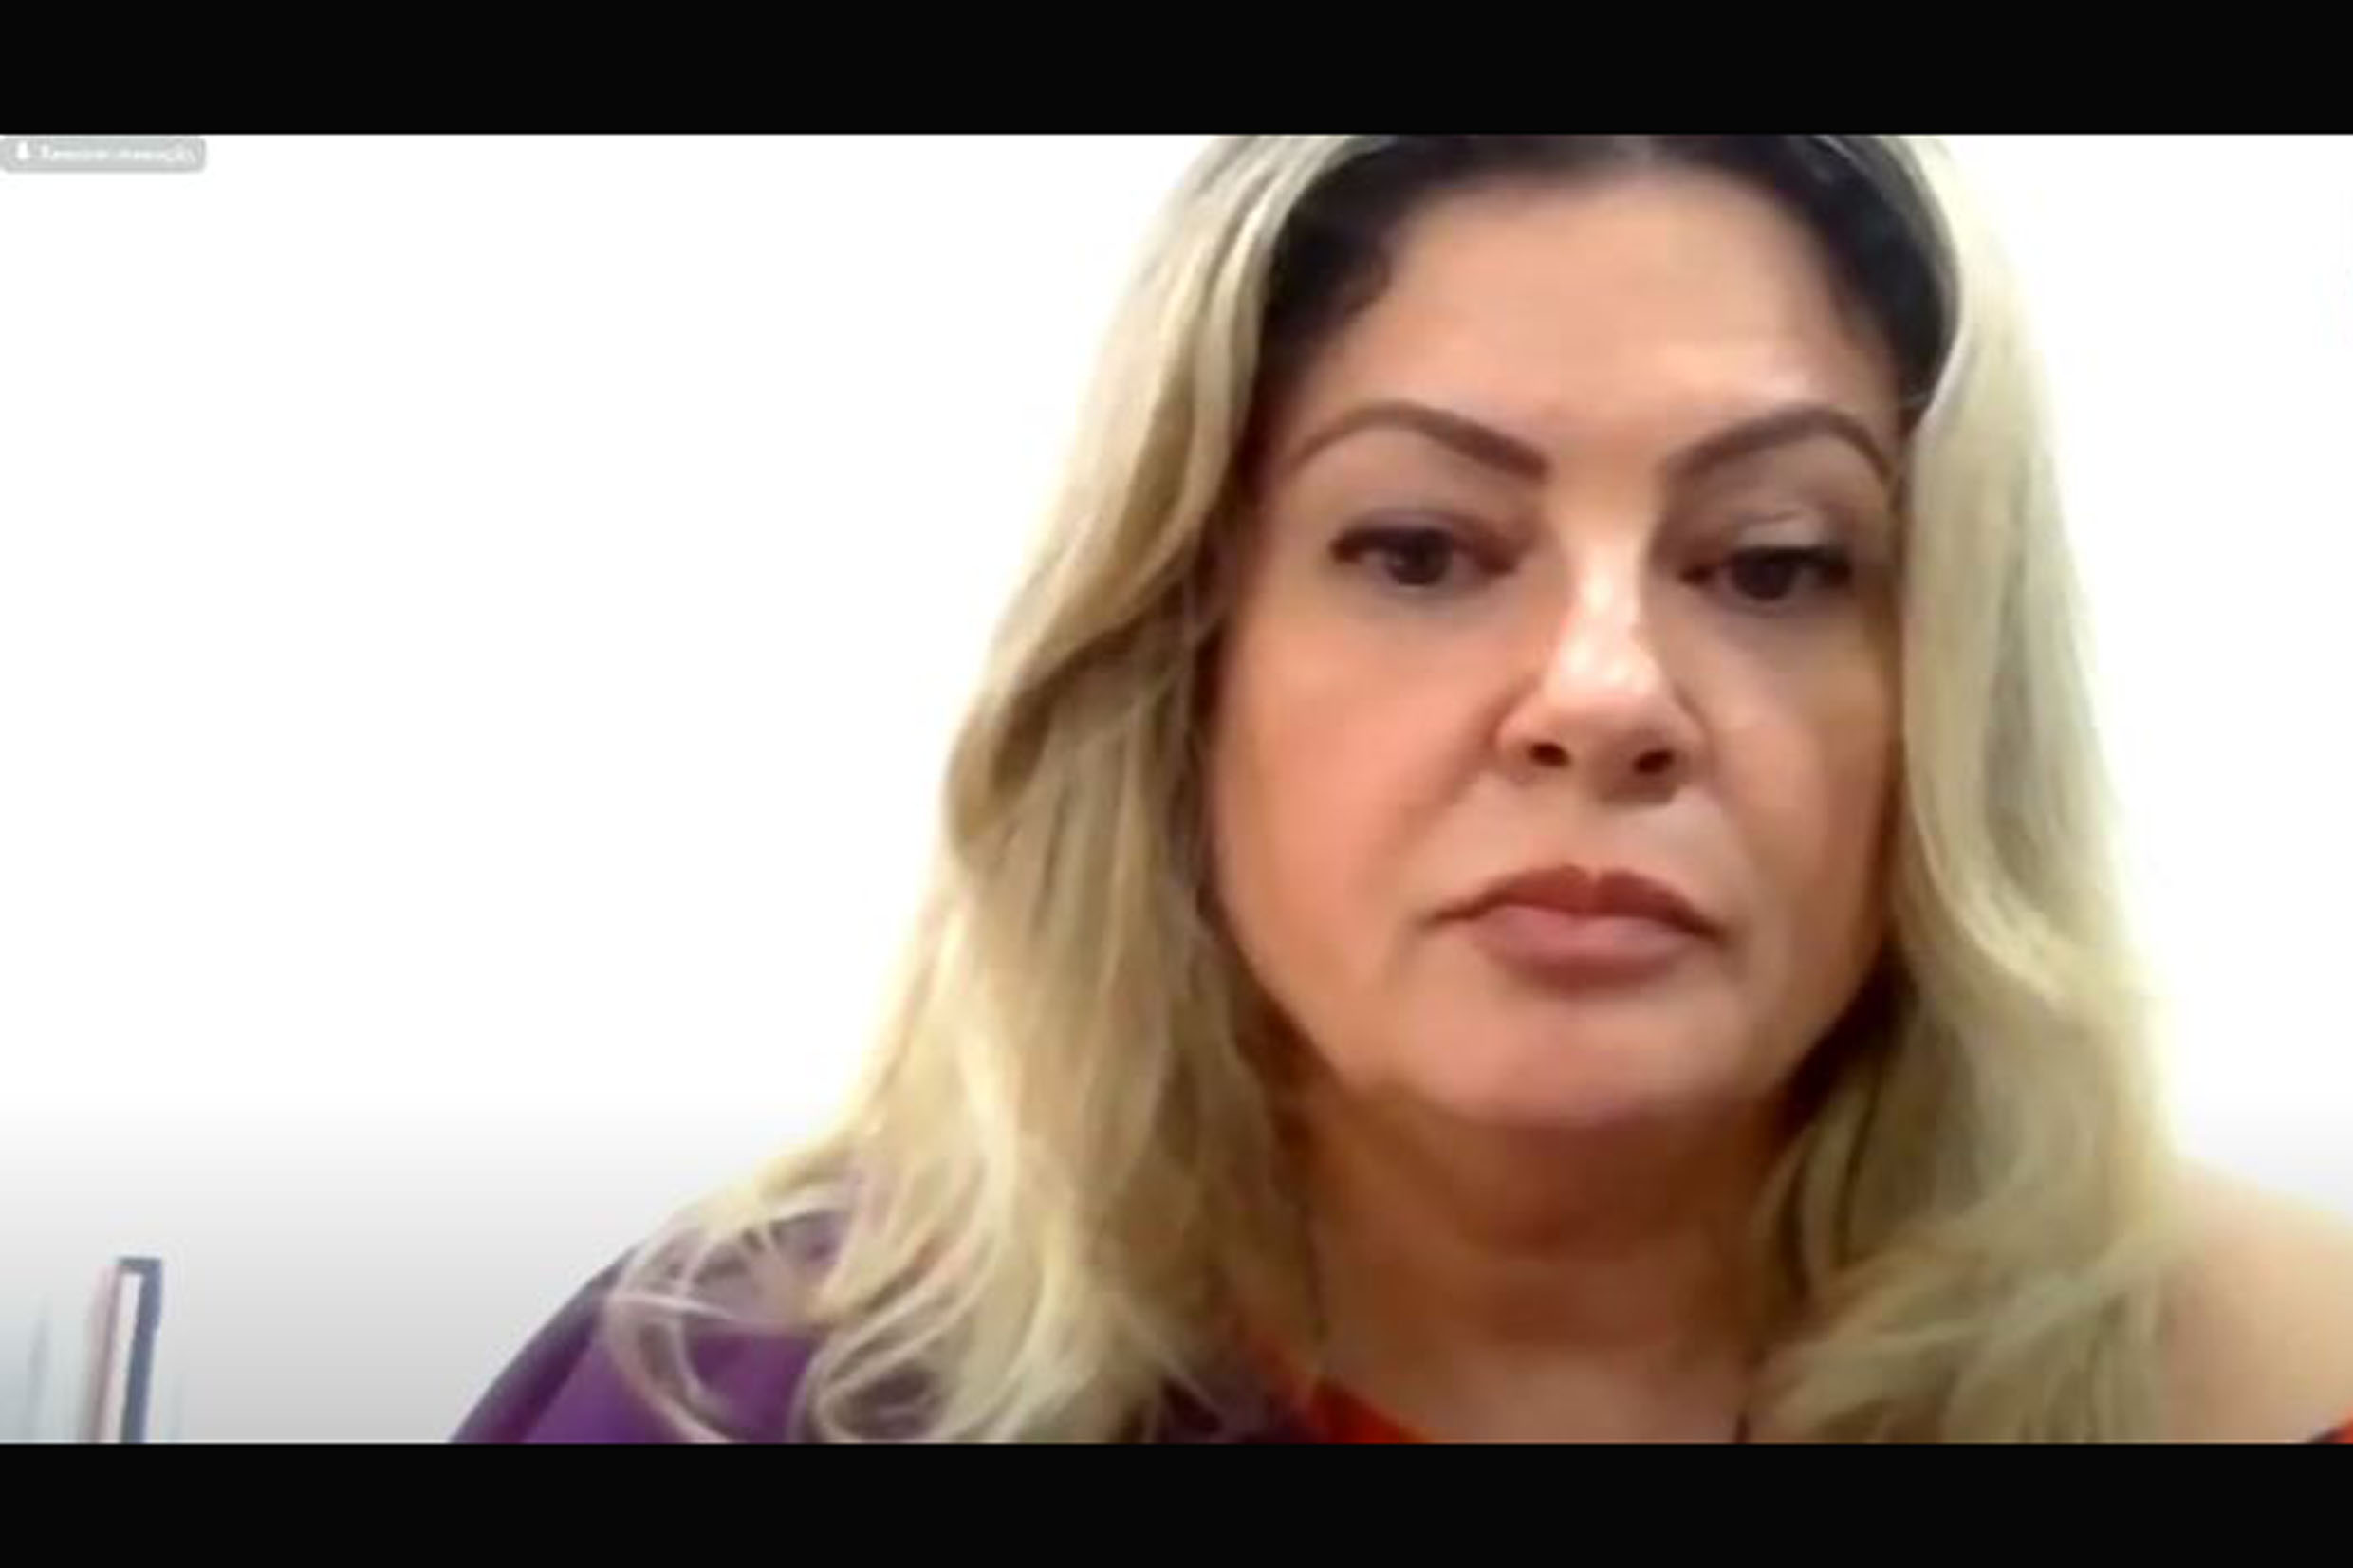 Patricia Bezerra<a style='float:right' href='https://www3.al.sp.gov.br/repositorio/noticia/N-08-2021/fg272739.jpg' target=_blank><img src='/_img/material-file-download-white.png' width='14px' alt='Clique para baixar a imagem'></a>